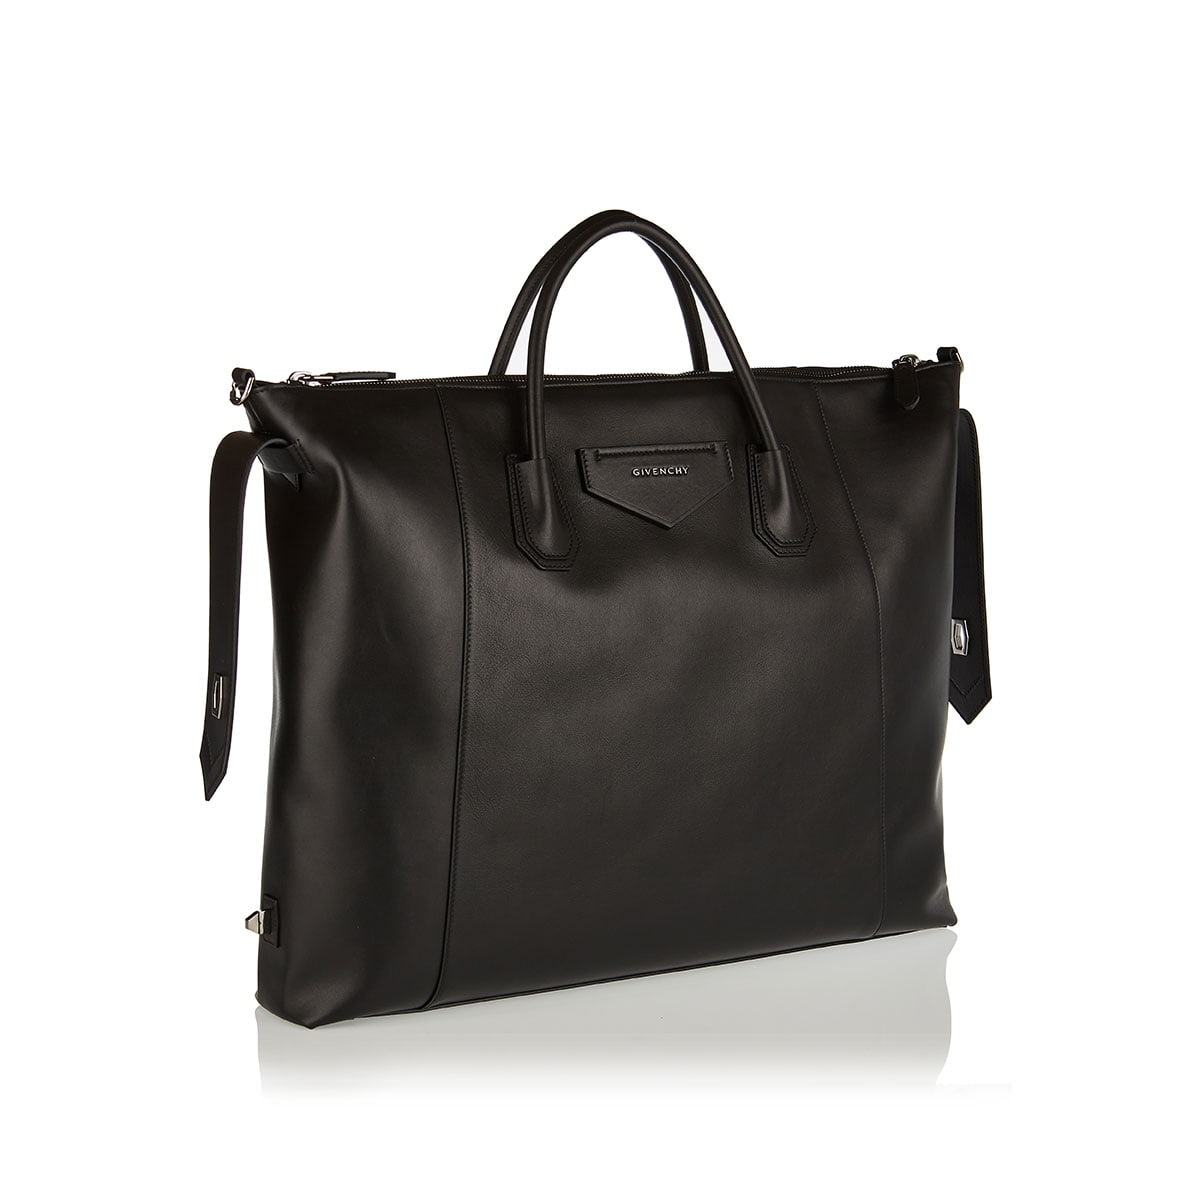 Antigona Soft large leather tote